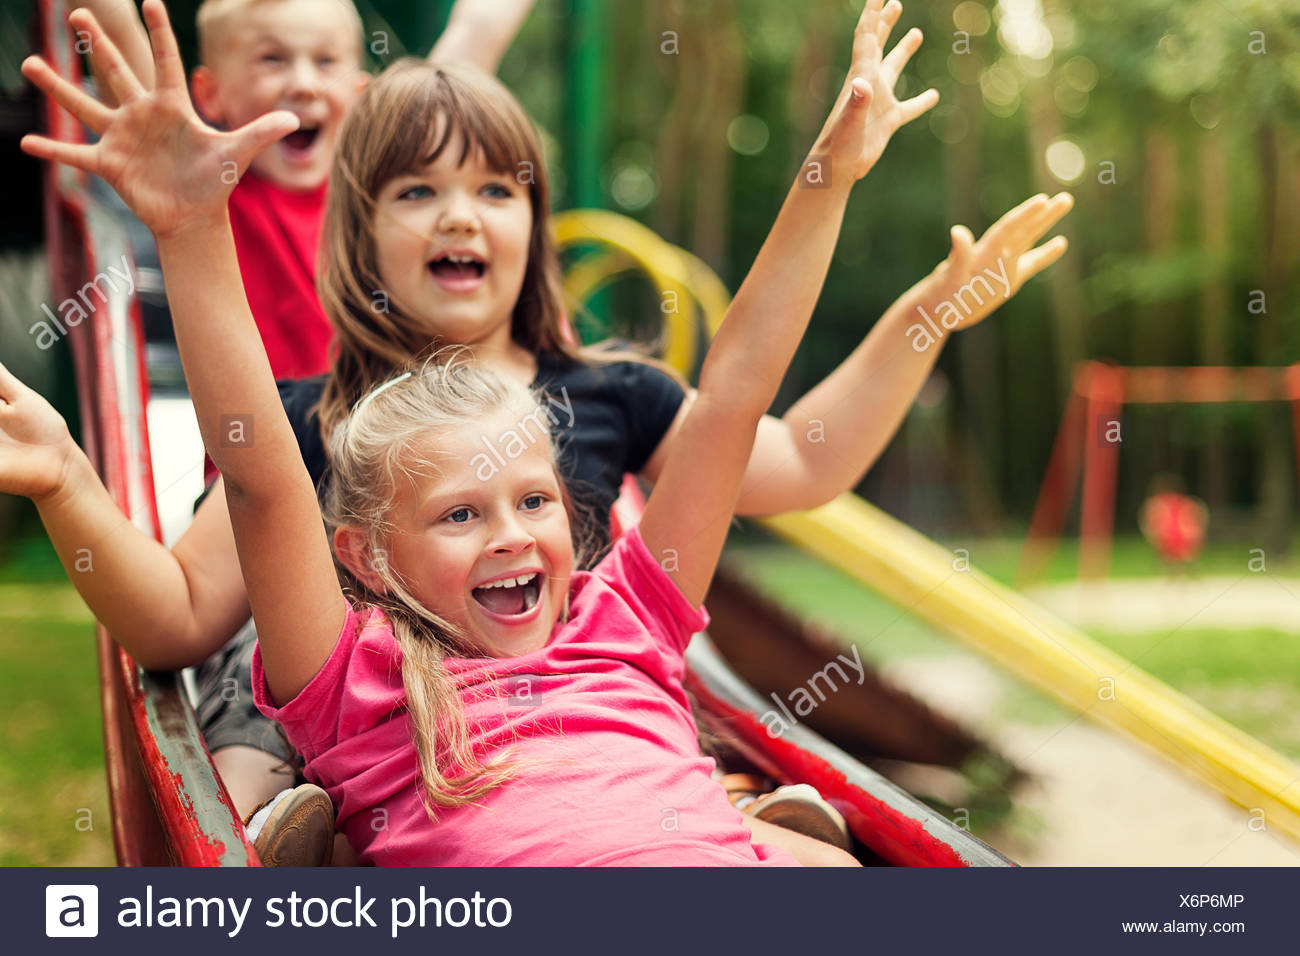 Happy kids playing on slide, Debica, Poland - Stock Image